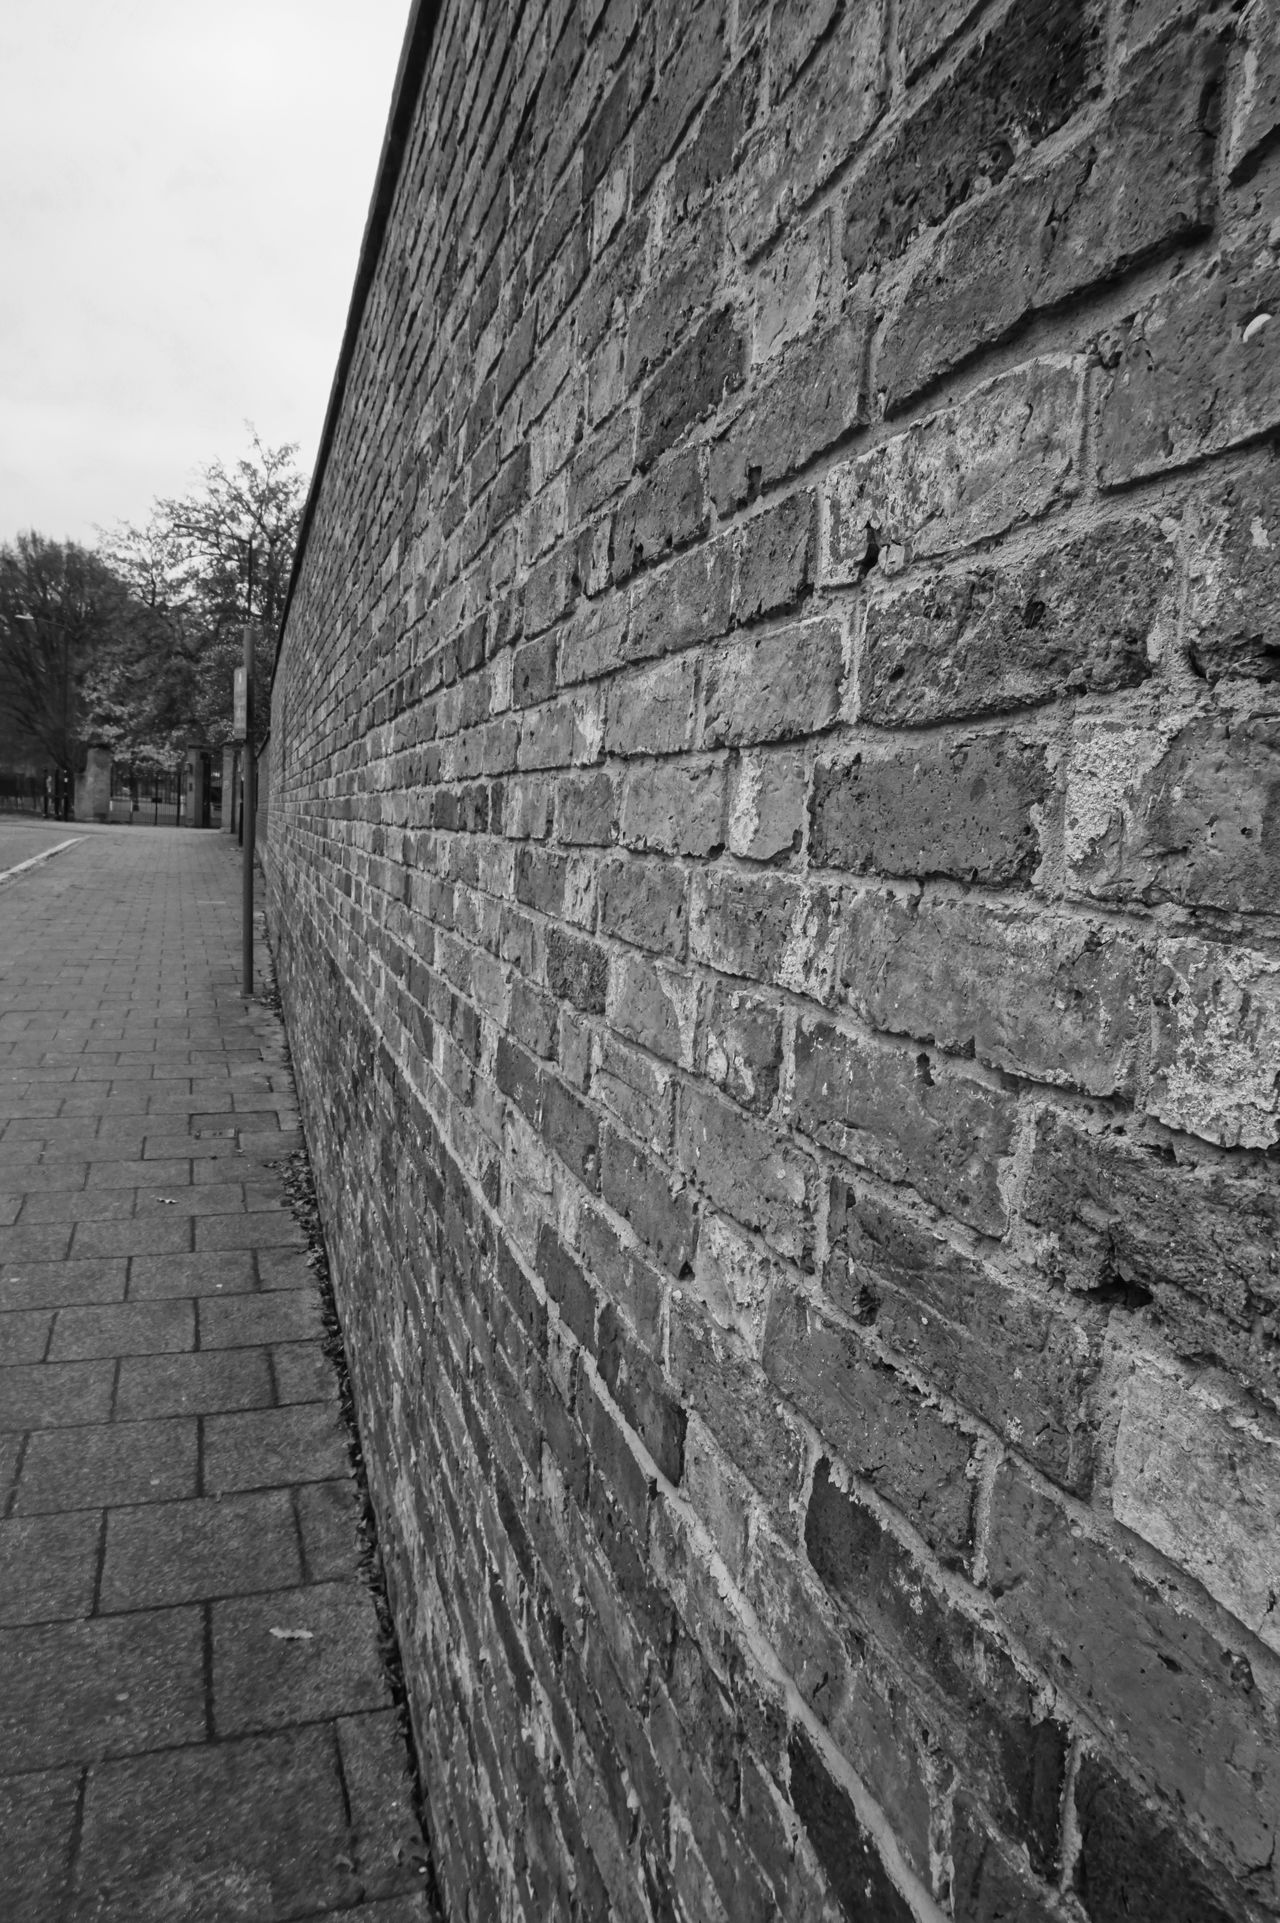 8023 Architecture Black & White Black And White Black And White Photography Black&white Blackandwhite Blackandwhite Photography Brick Wall Brickwall Built Structure Day Diminishing Perspective No People Outdoors Path Pathway Sky The Way Forward Trees The Architect - 2017 EyeEm Awards The Architect - 2017 EyeEm Awards